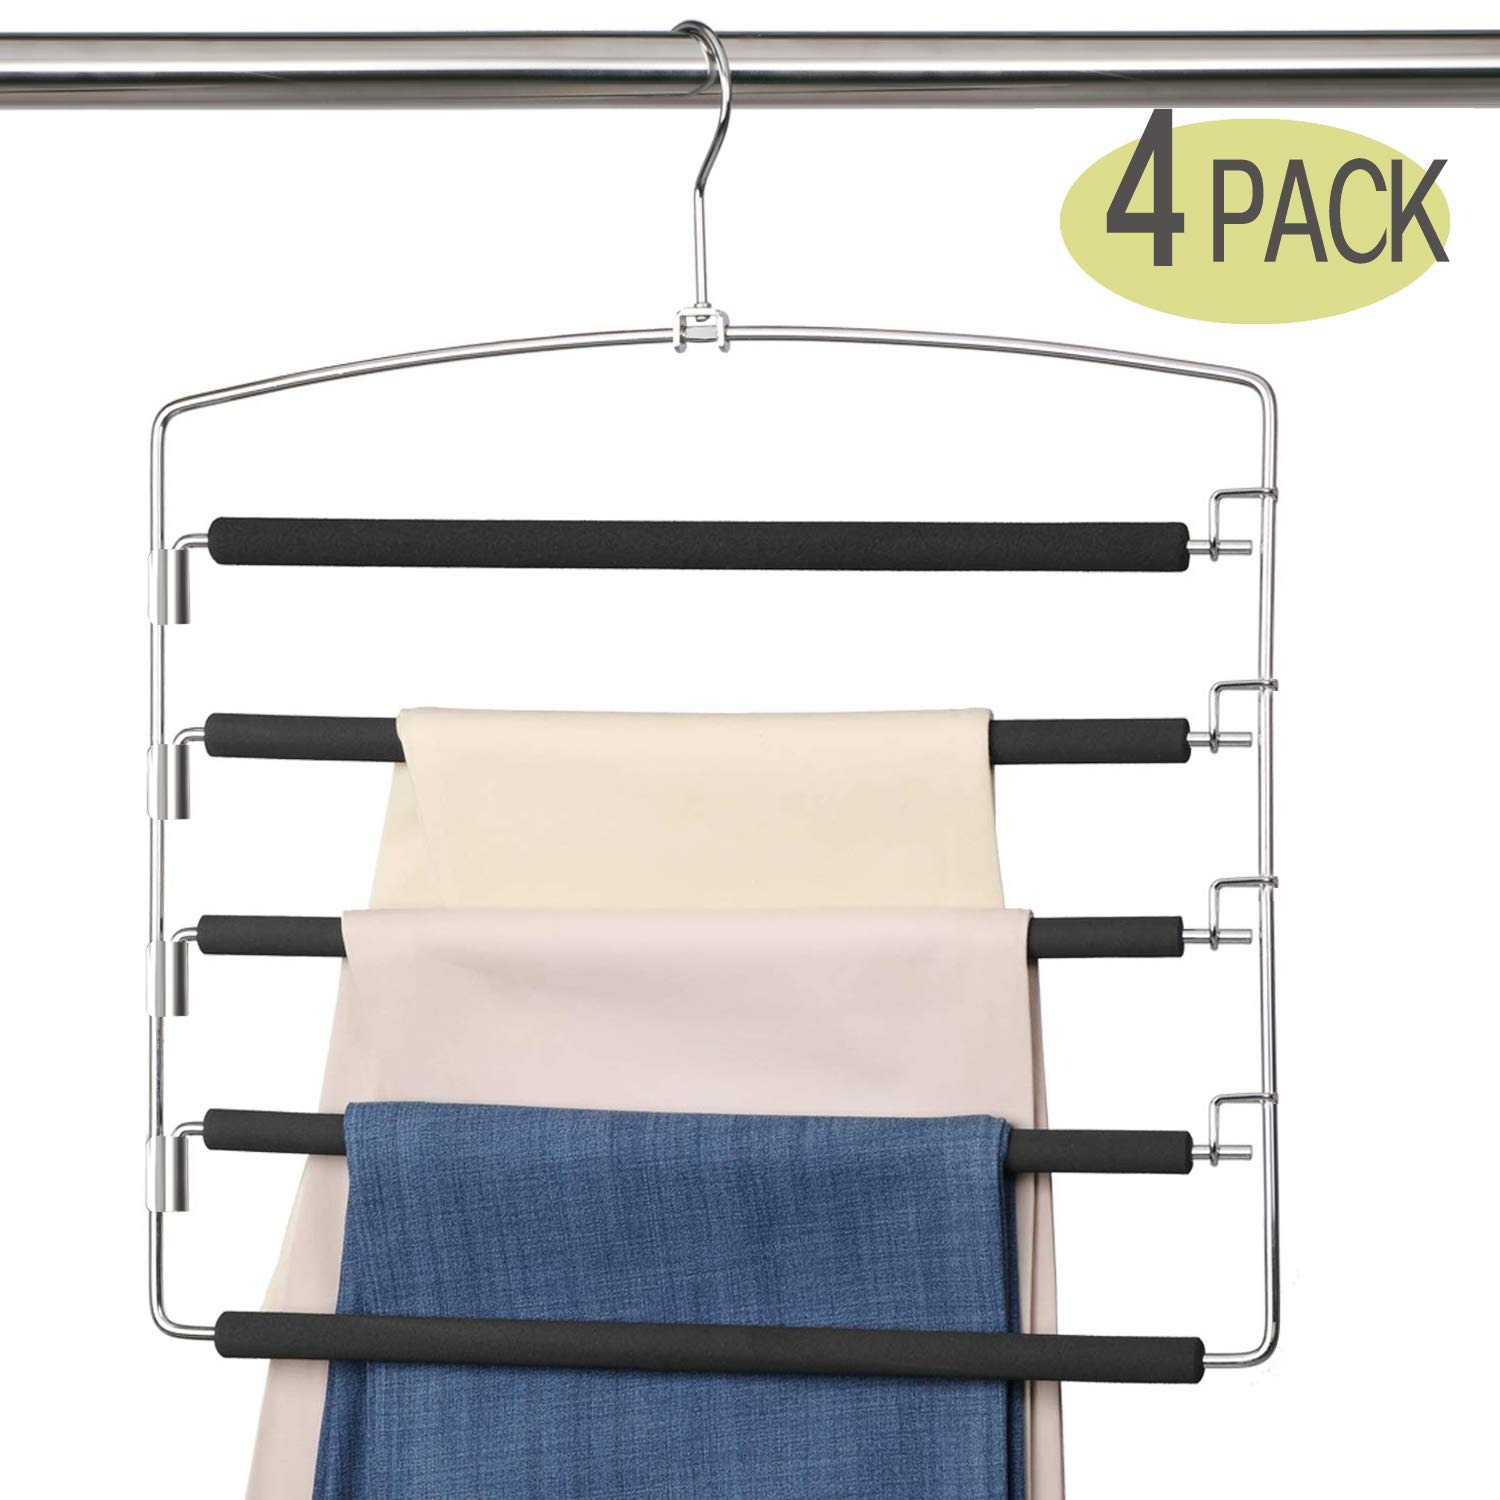 Meetu Pants Hangers 5 Layers Stainless Steel Non-Slip Foam Padded Swing Arm Space Saving Clothes Slack Hangers Closet Storage Organizer for Pants Jeans Trousers Skirts Scarf Ties Towels (4 Pack) by Meetu